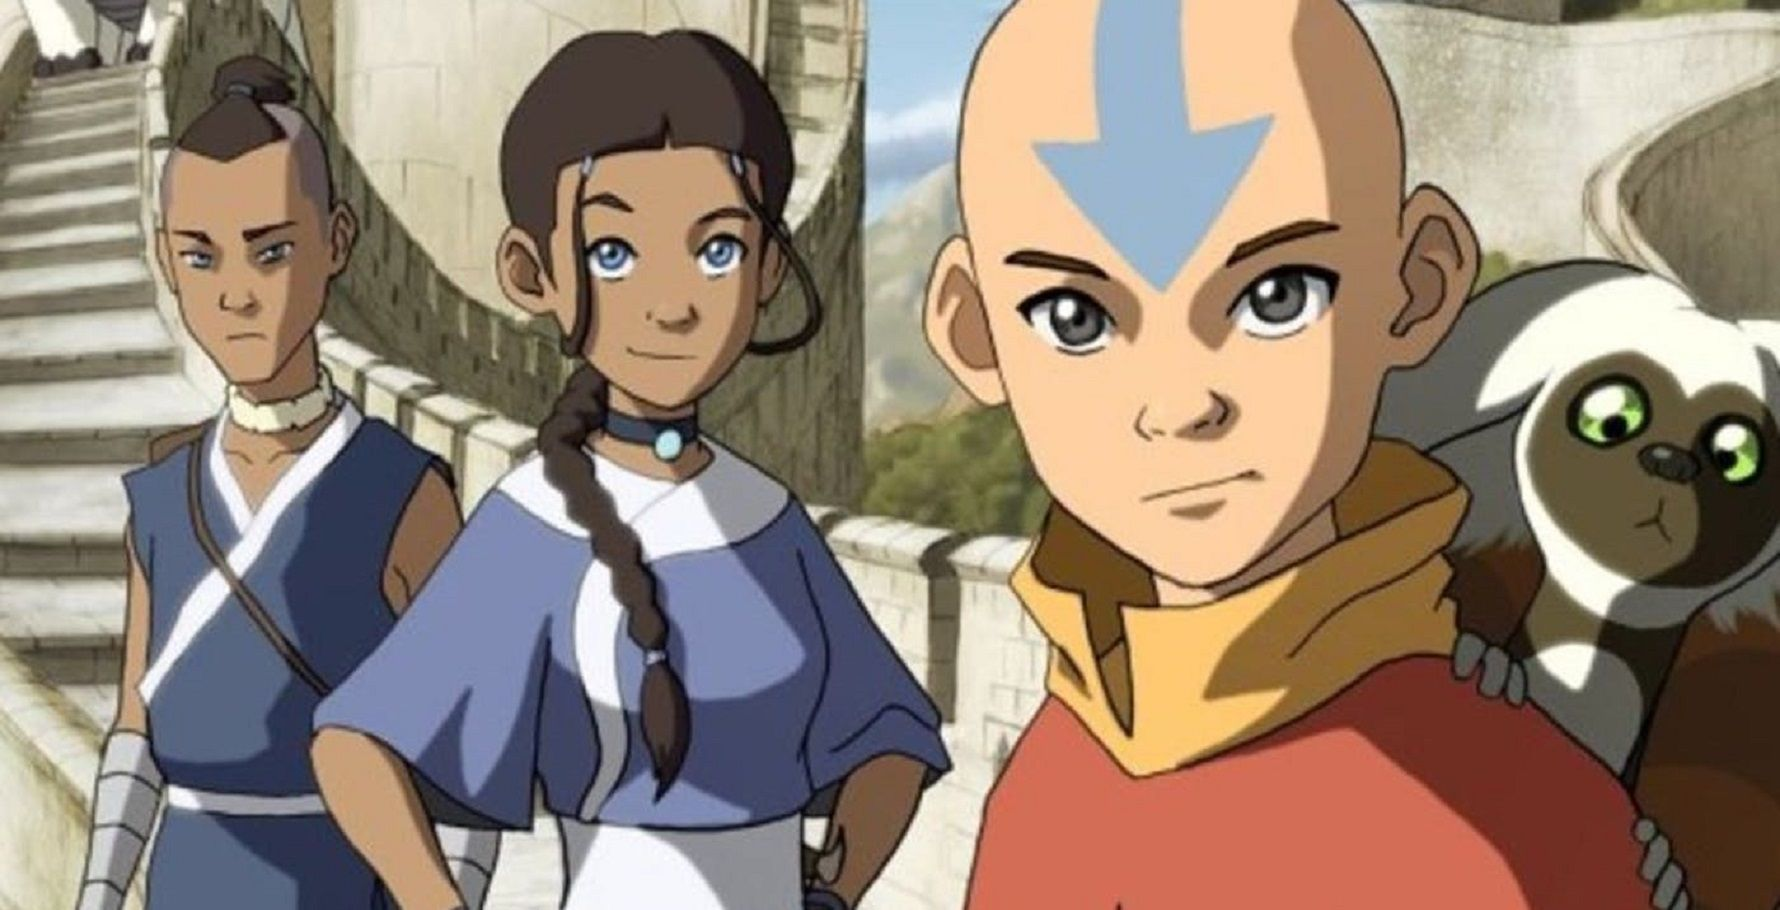 Avatar: The Last Airbender - The Worst Thing Each Main